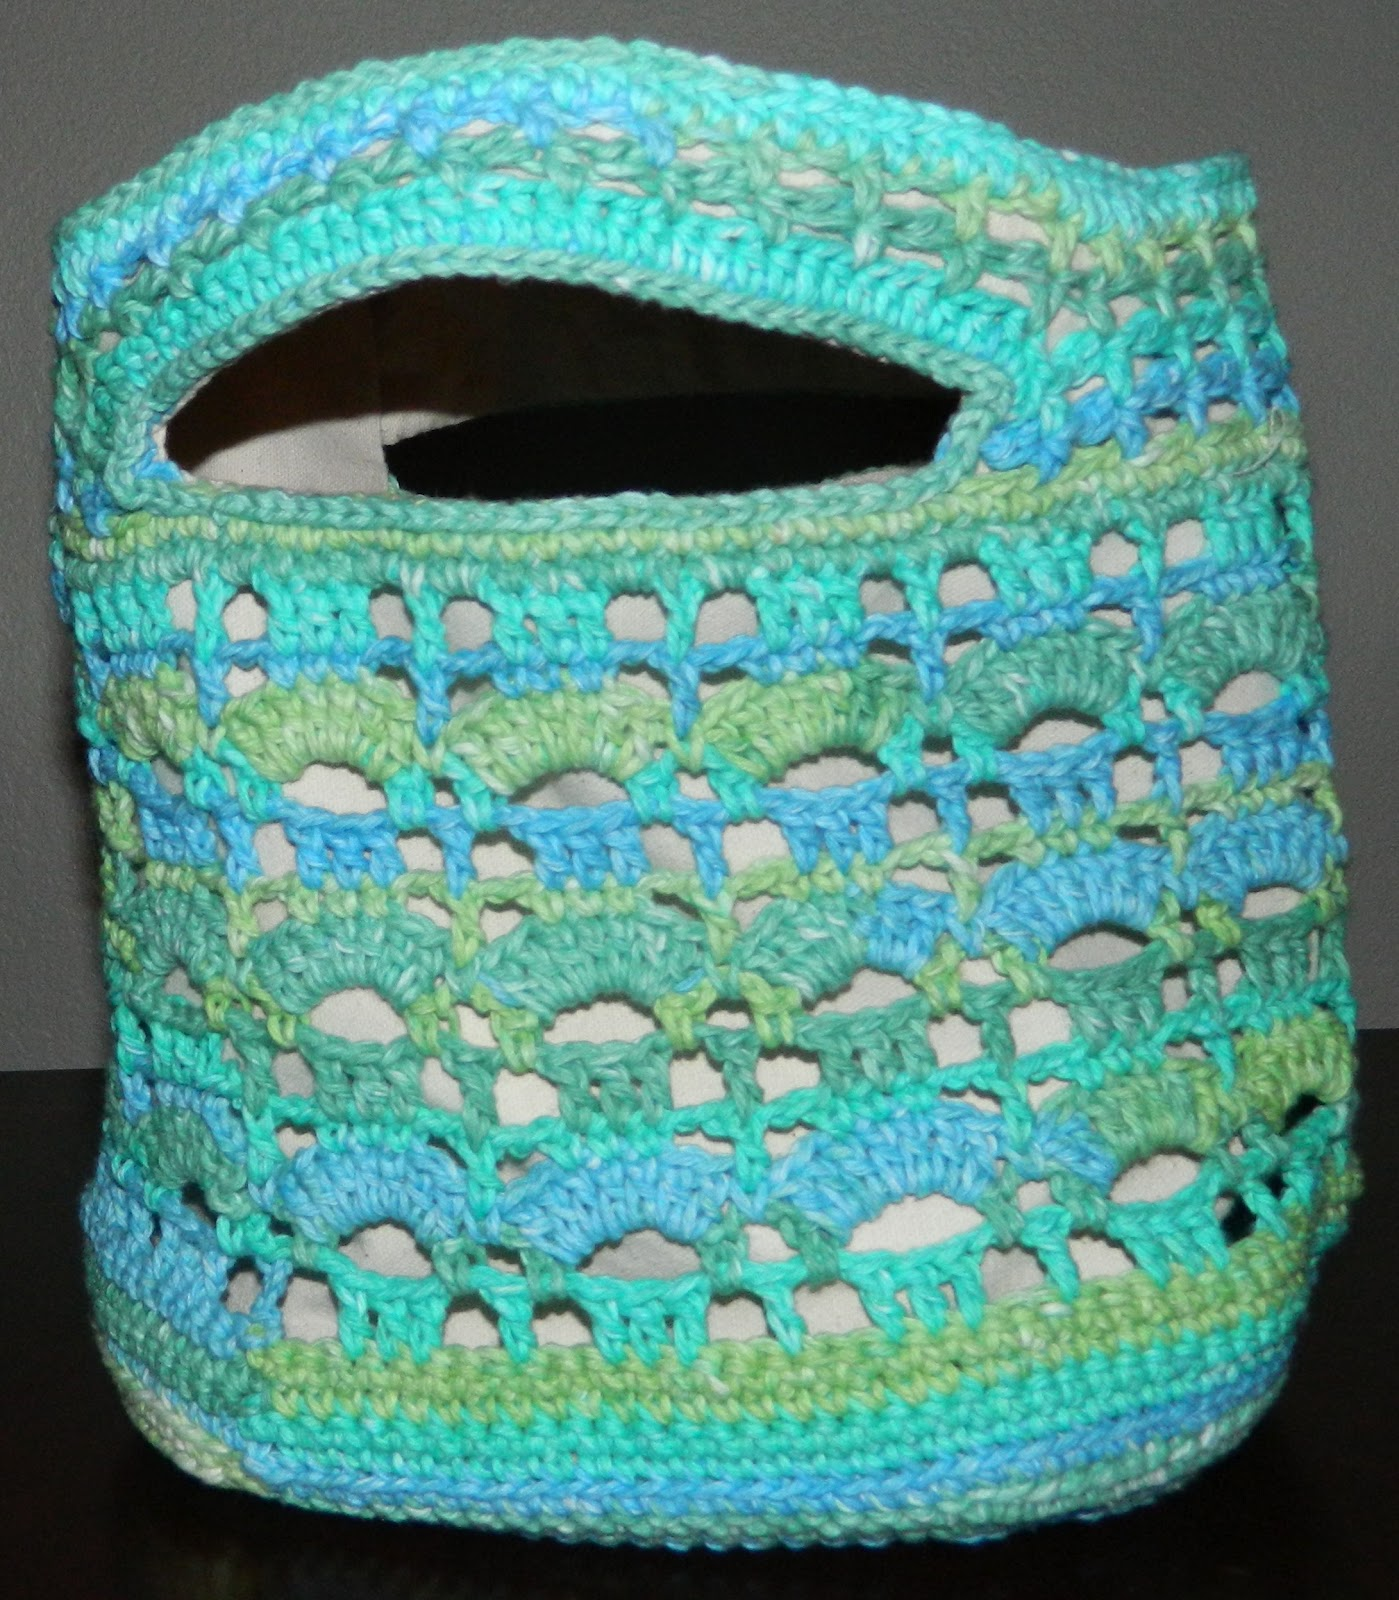 Lining Crochet Bag : lauras frayed knot: Crocheted Beach Bag Lining Instructions